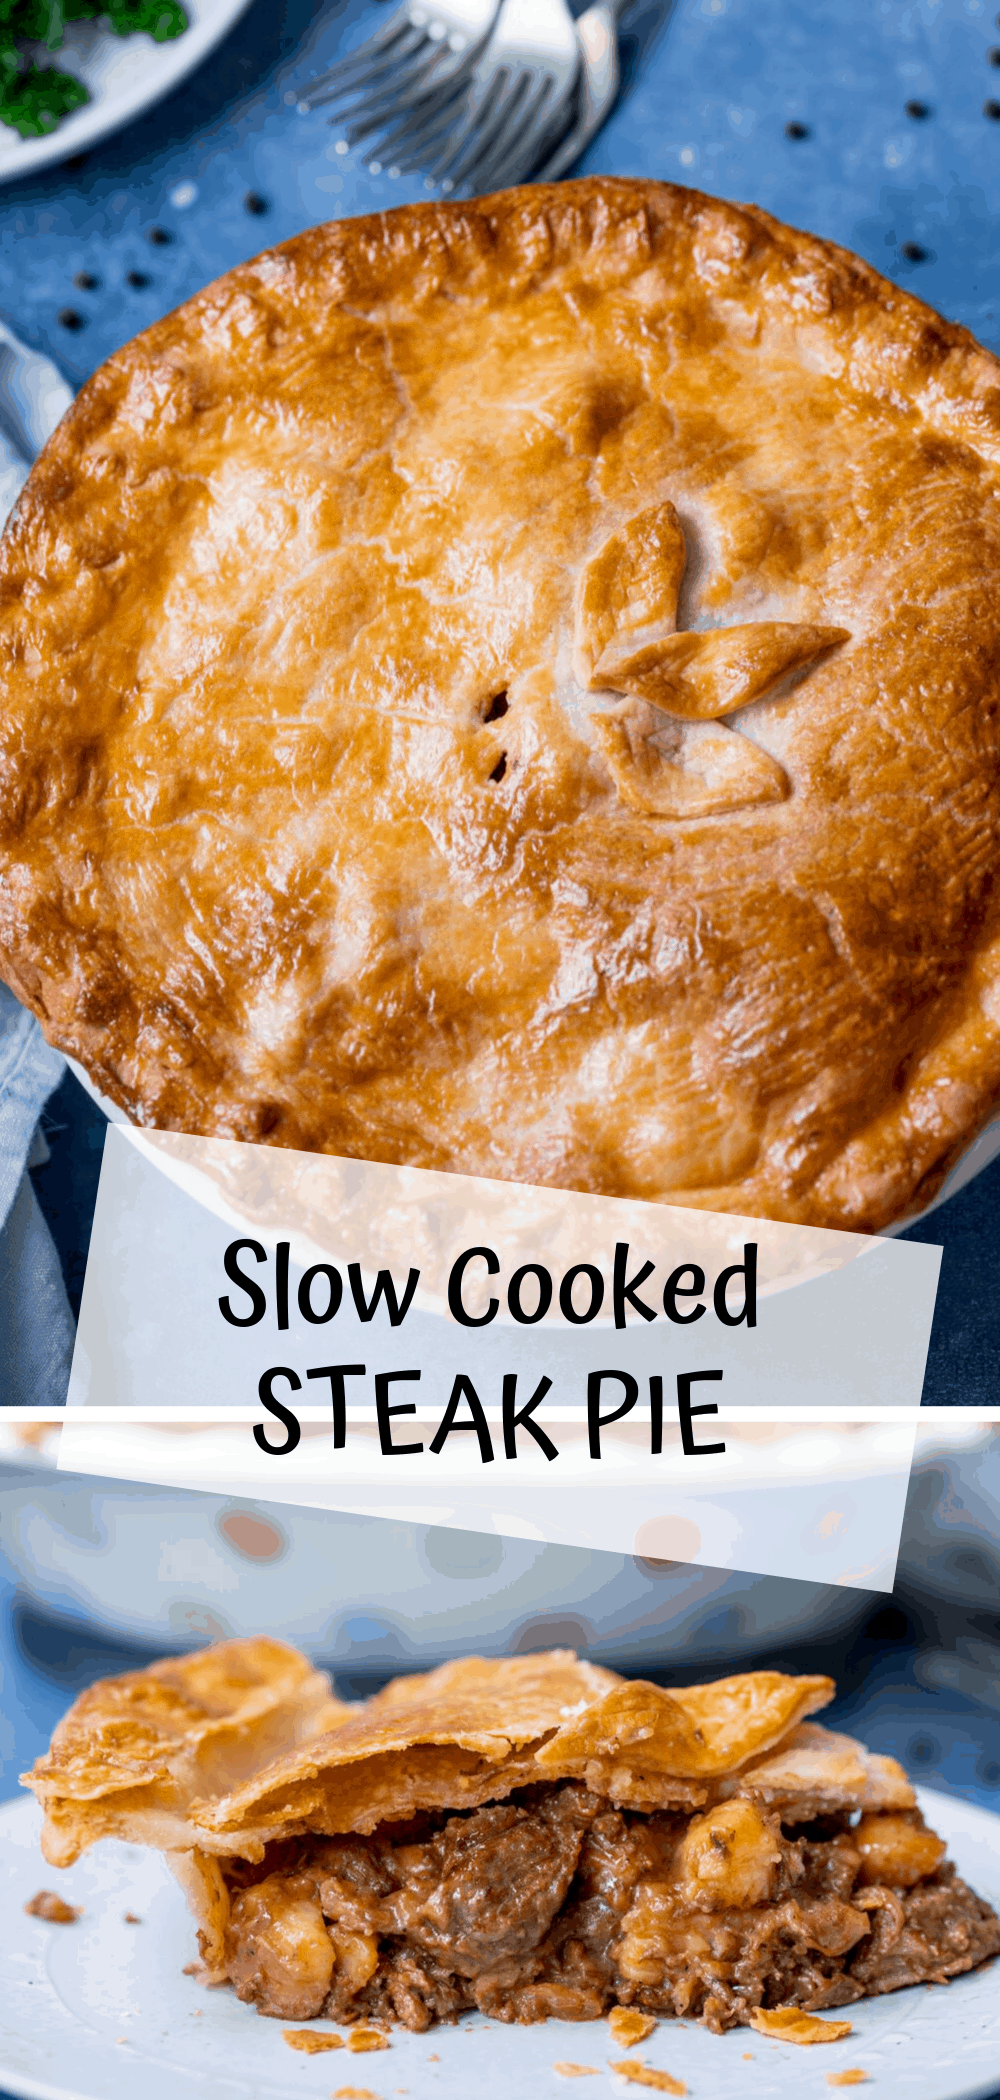 Rich and tasty slow cooked steak pie with potatoes. # ...